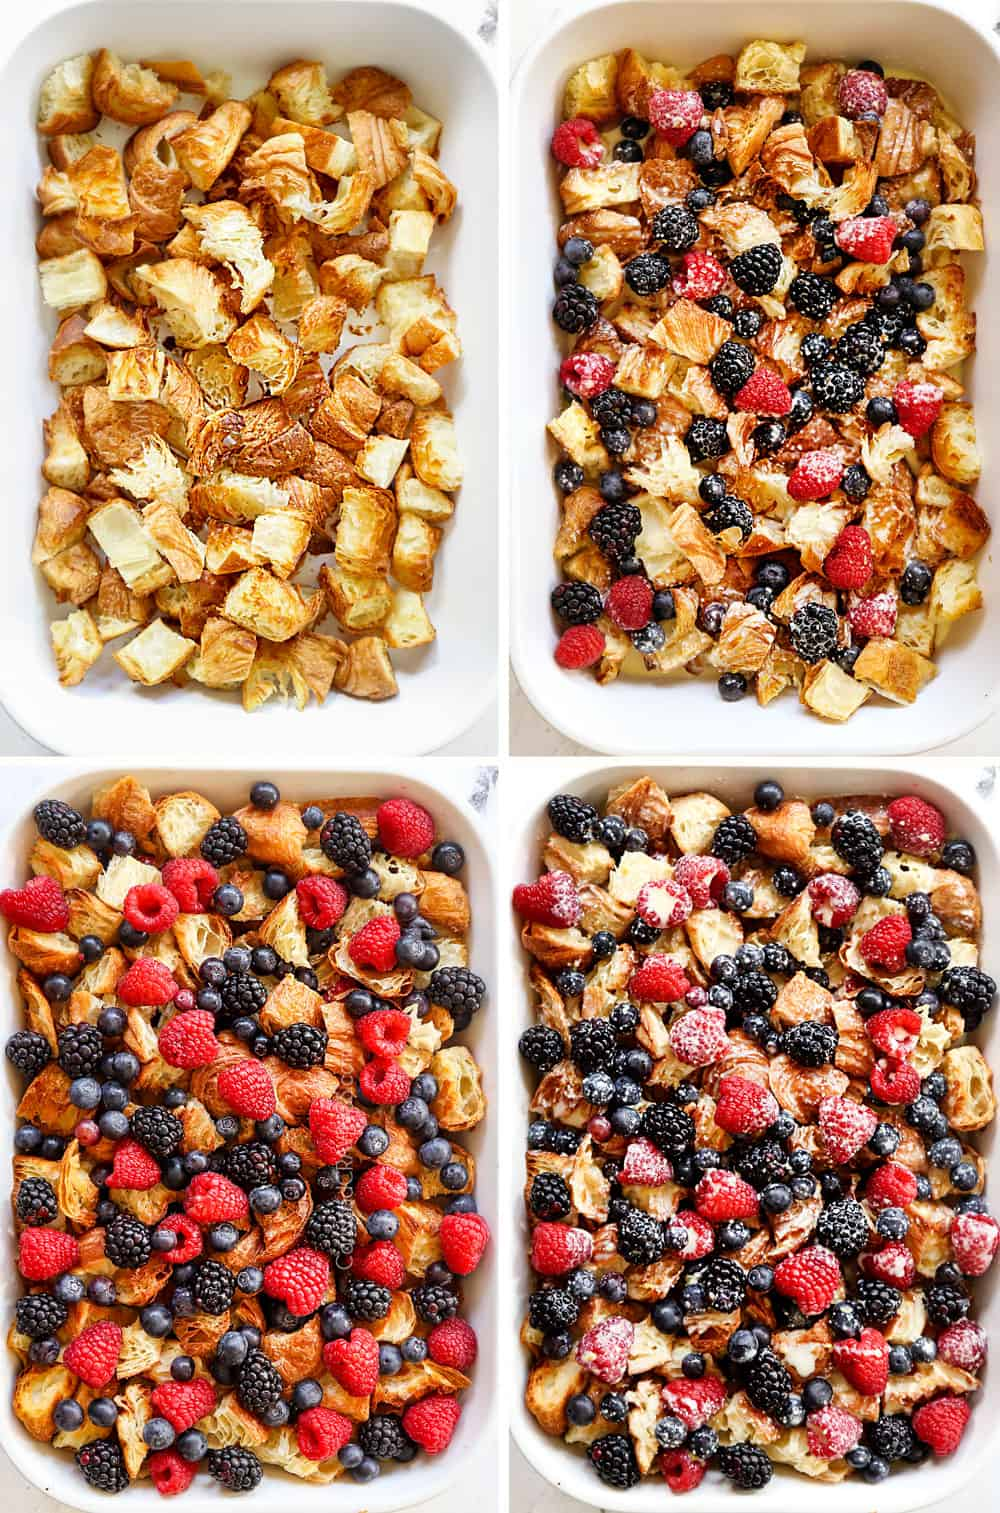 a collage showing how to make sweet breakfast casserole by adding croissants to baking dish then berries, then custard and repeating the layers